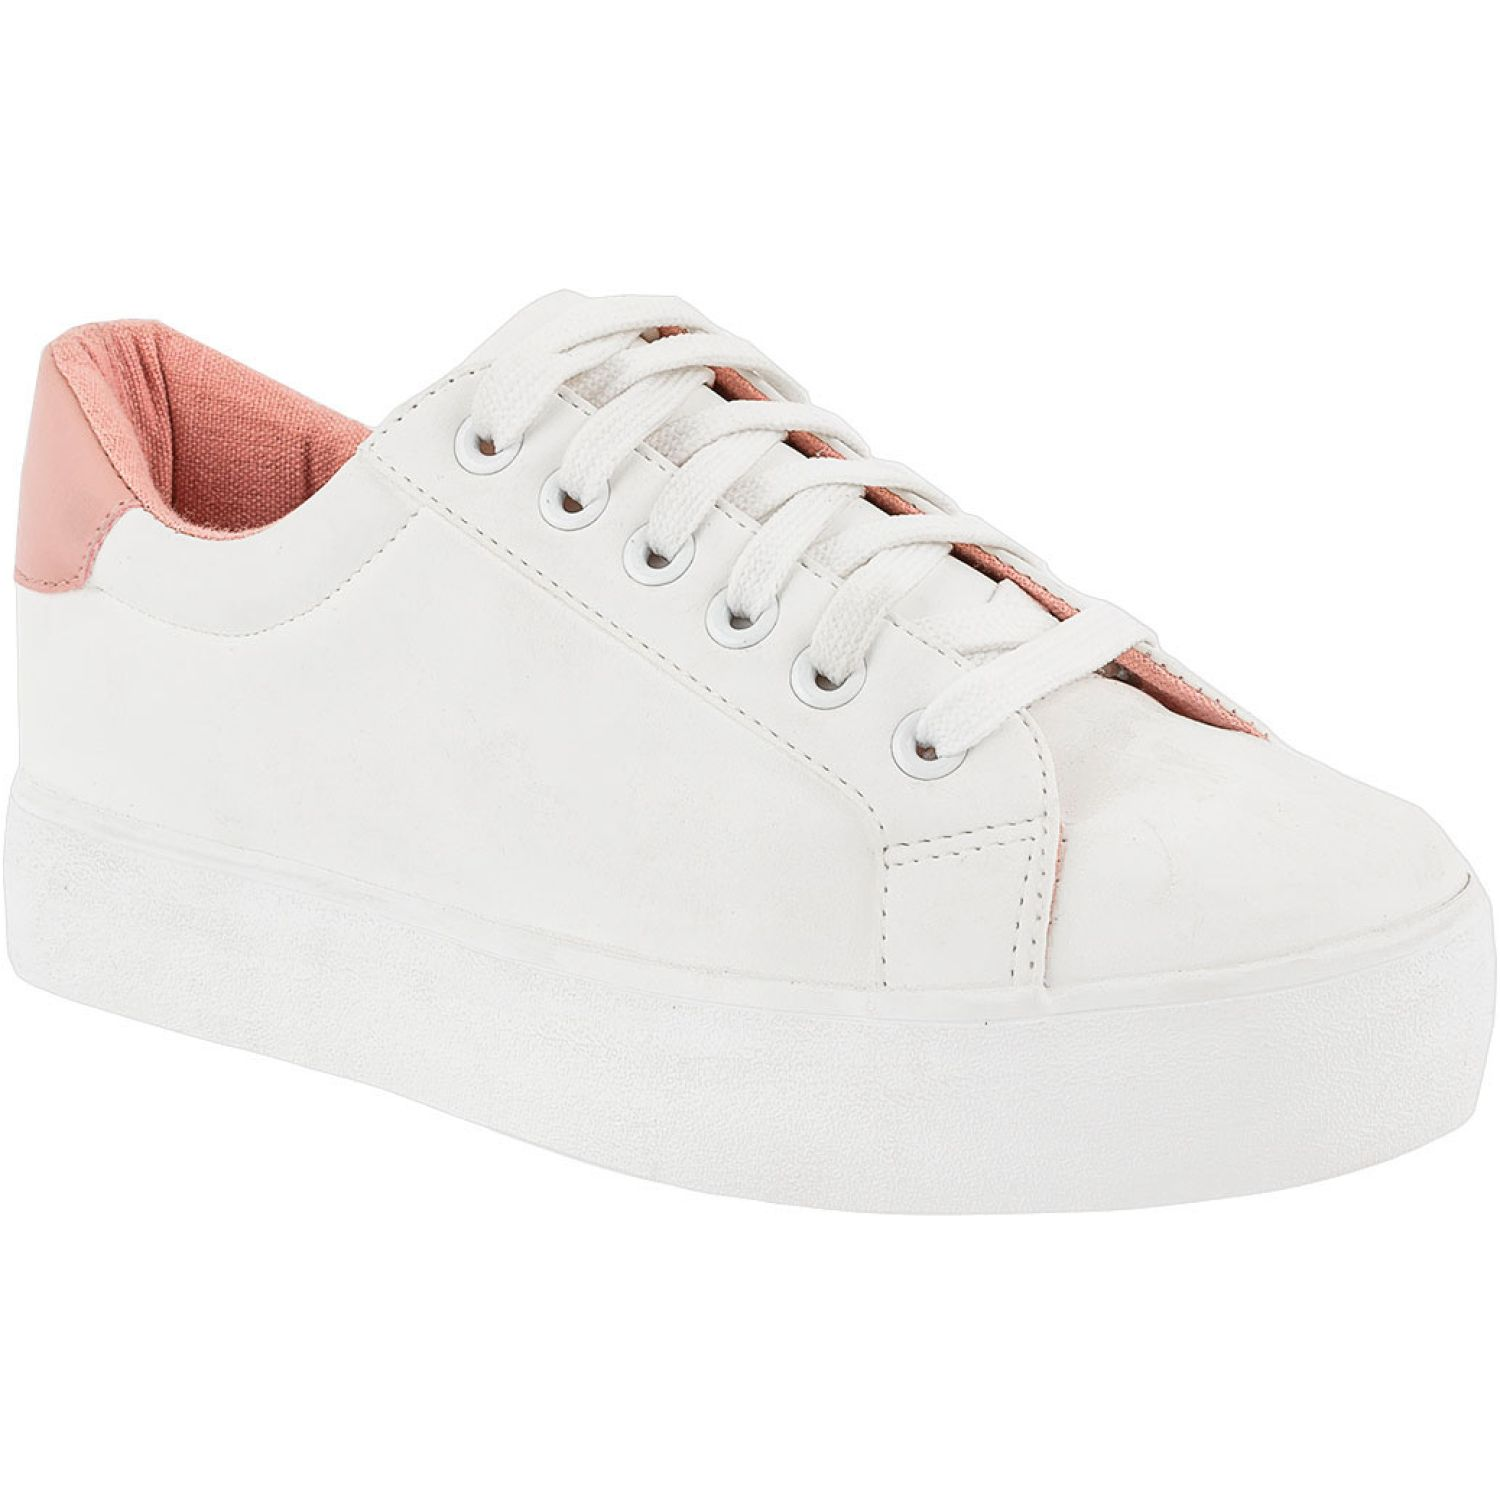 Impuls YAKELY01 Blanco Zapatillas Fashion